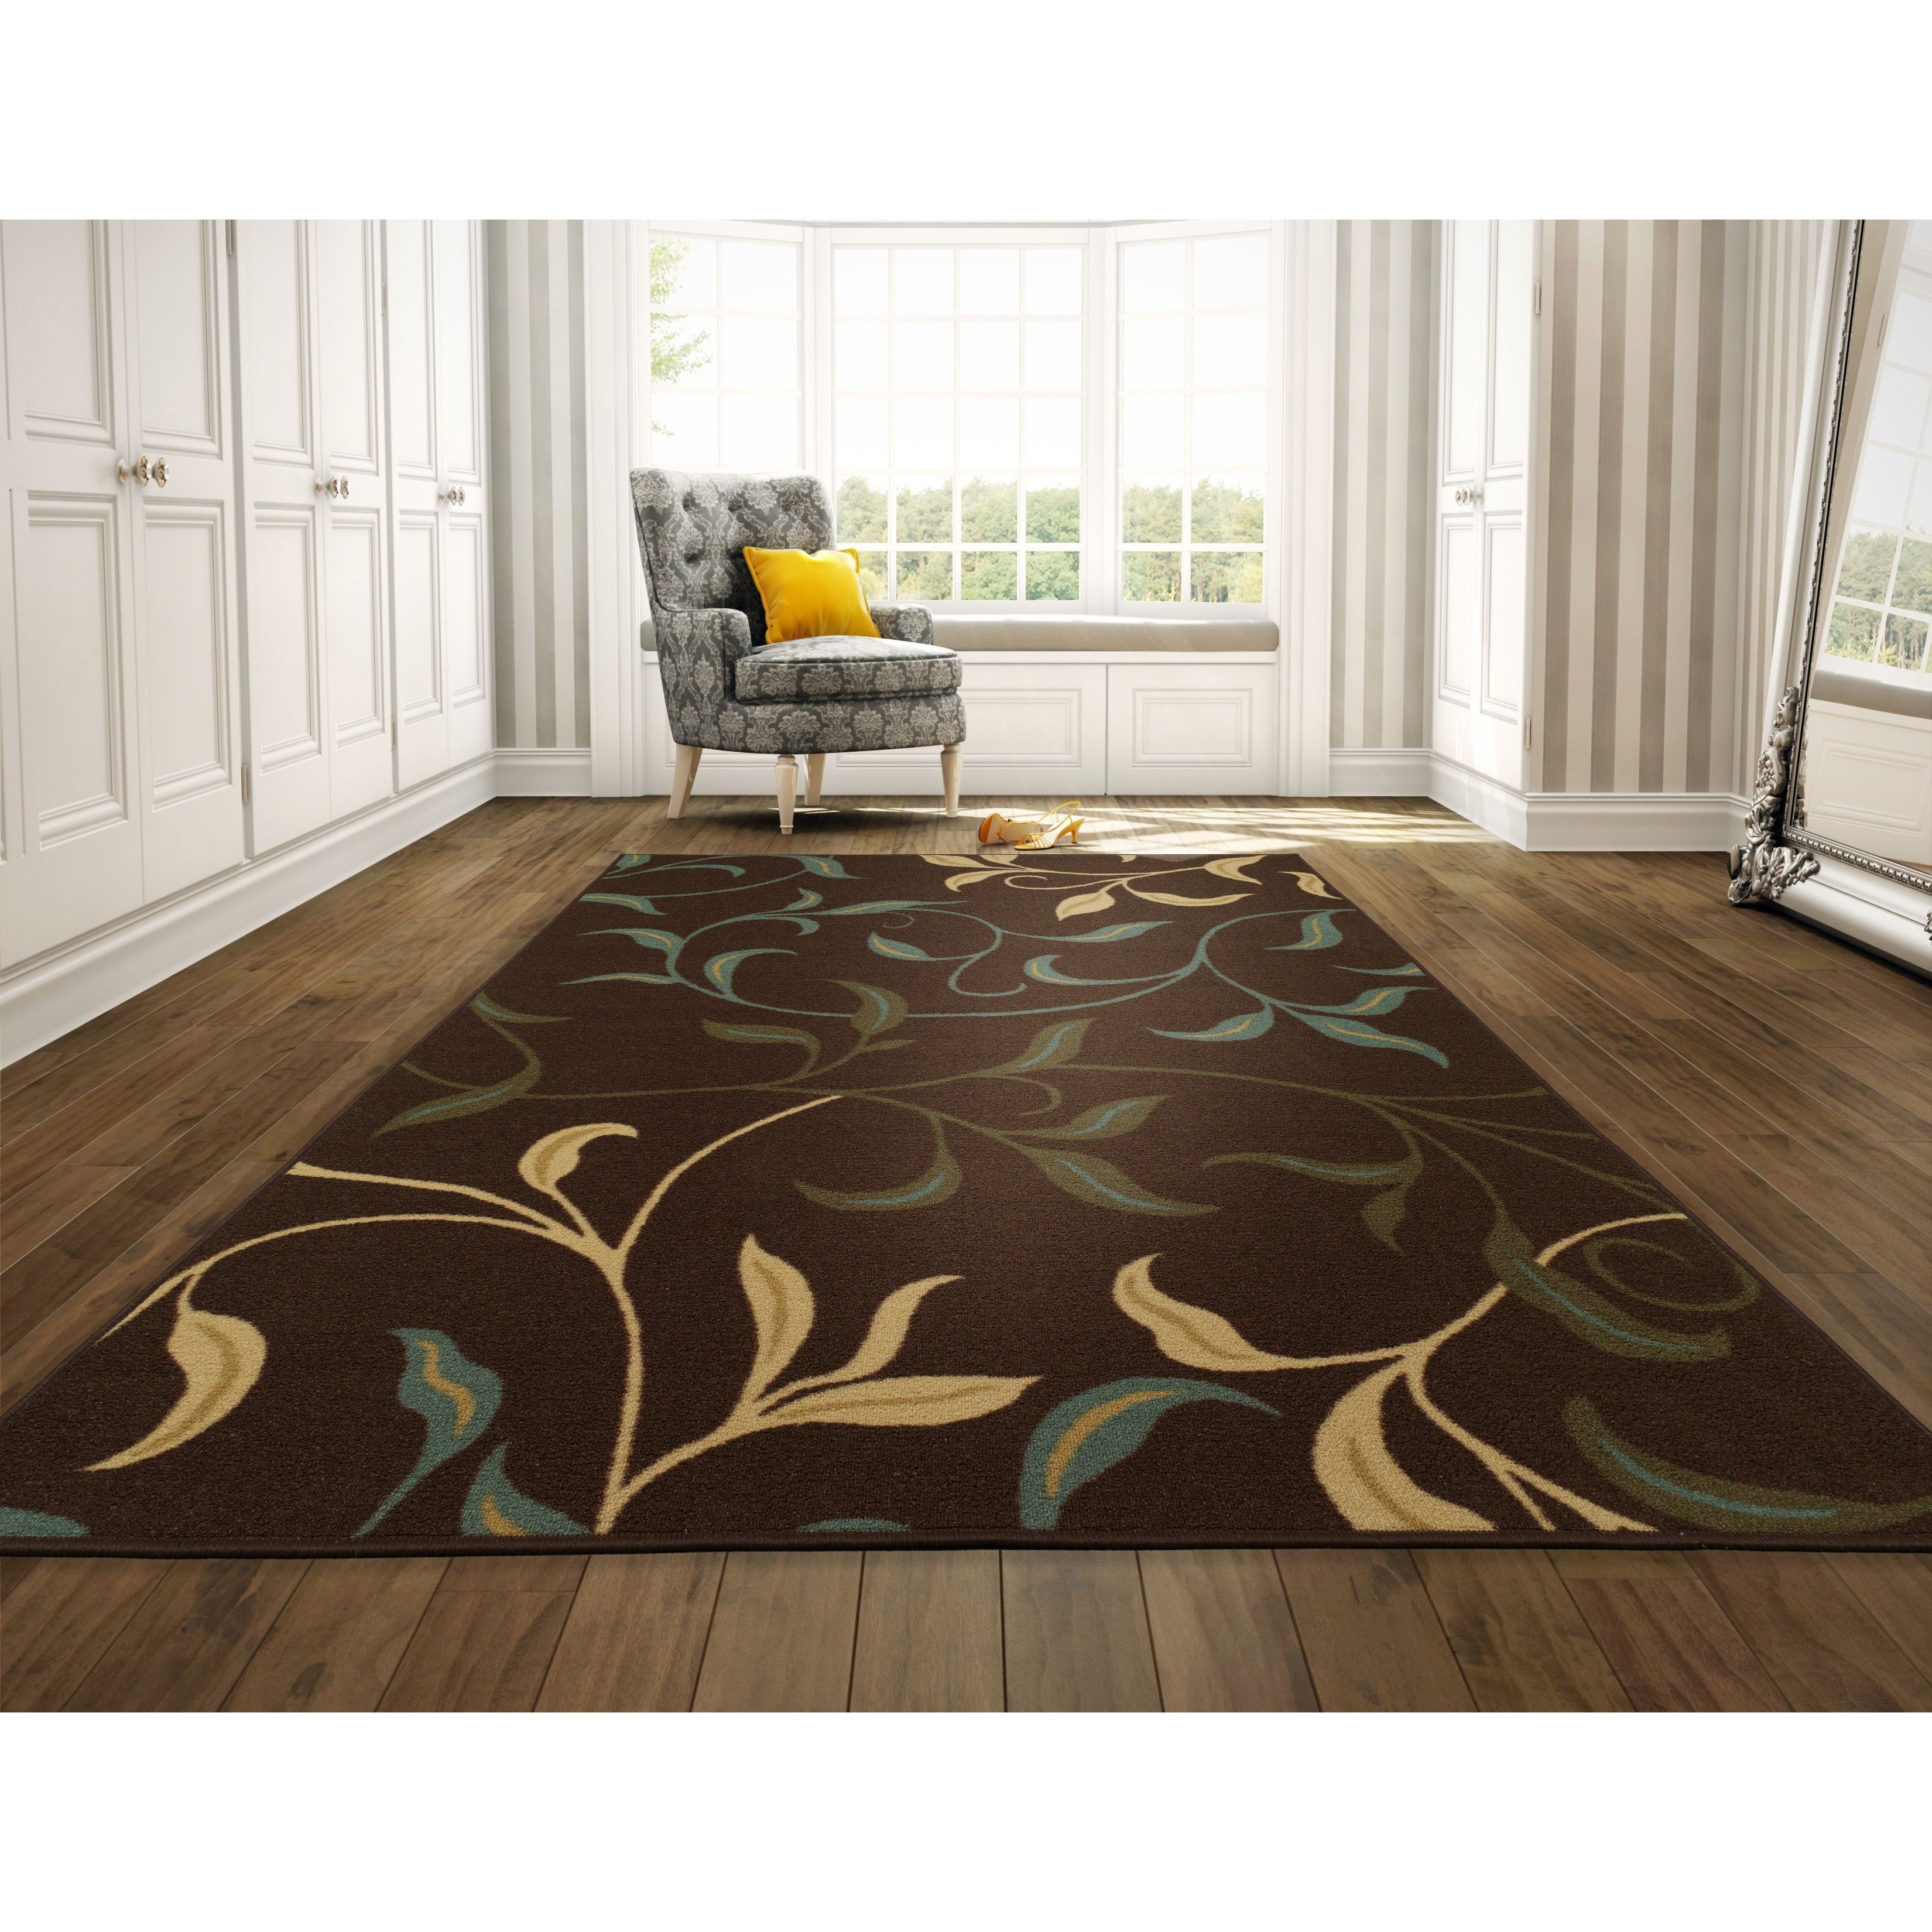 Ottomanson Ottohome Contemporary Leaves Design Modern Cho...